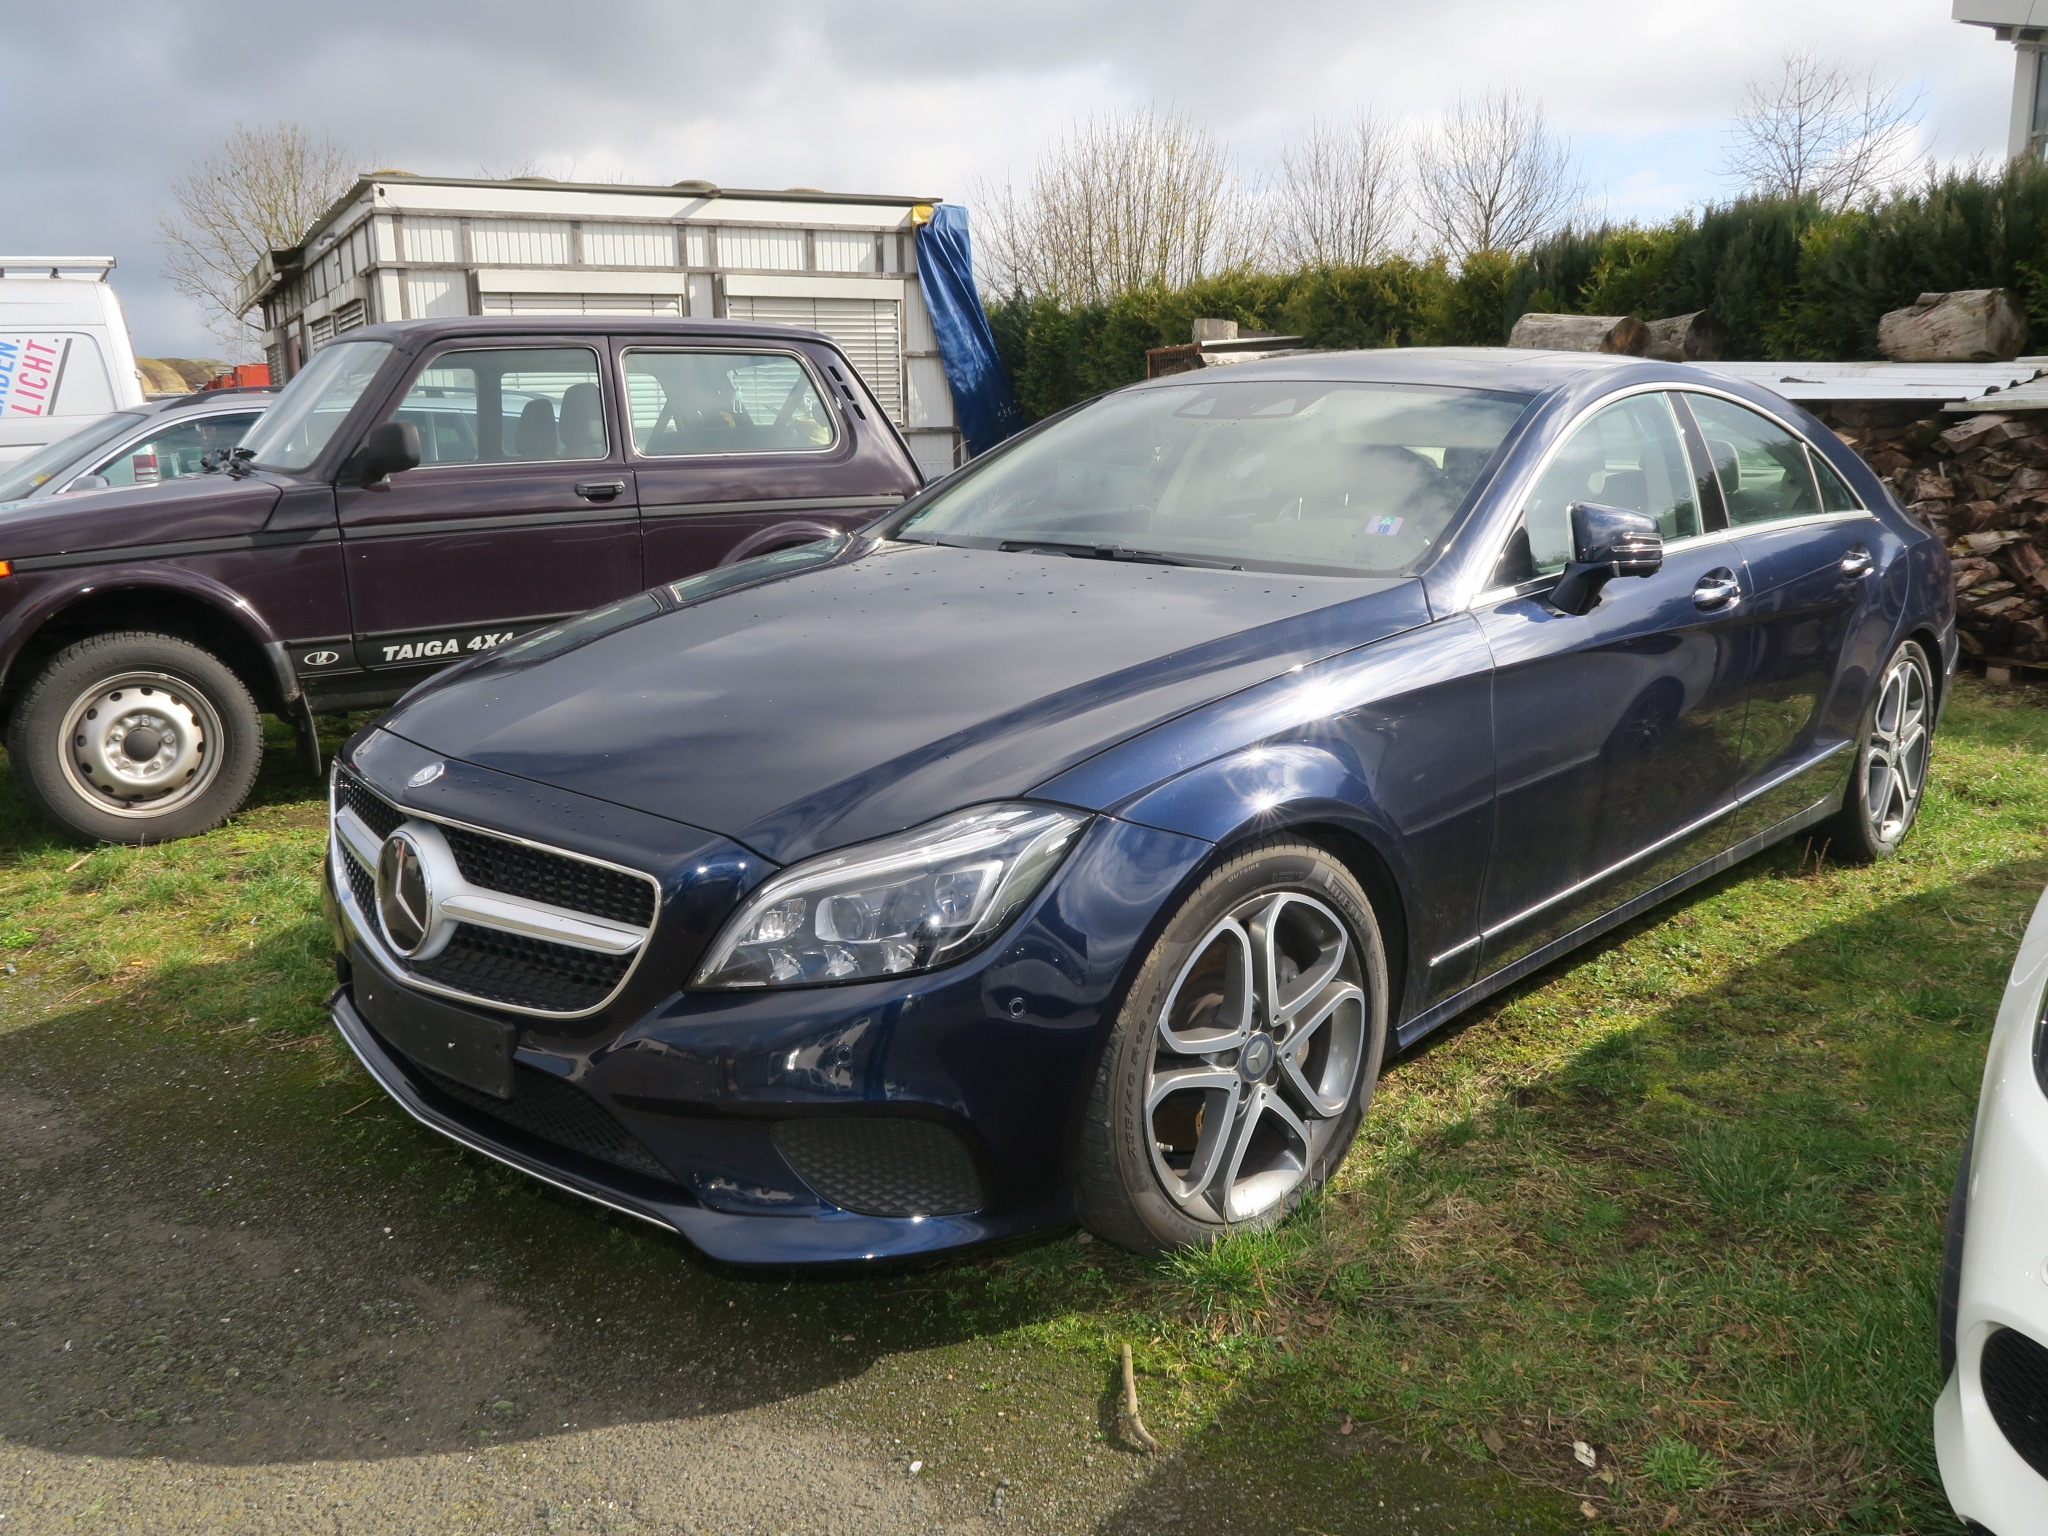 Mercedes-Benz CLS 350 D 4Matic, EZ 2015, 73.000 km, Raum Northeim